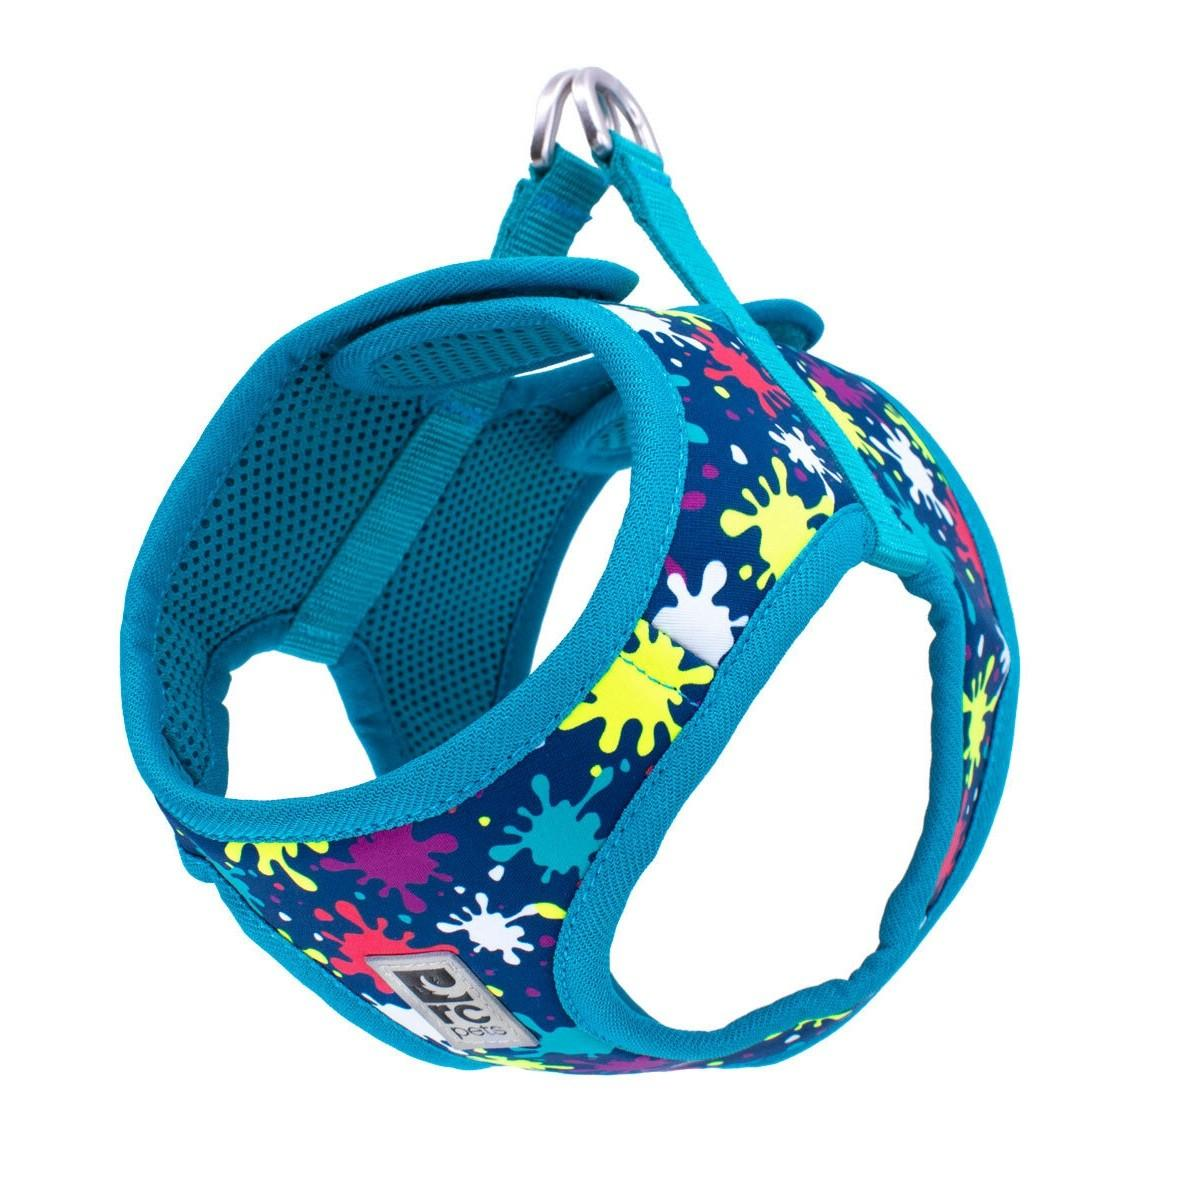 RC Pet Products Step in Cirque Dog Harness, Splatter Image